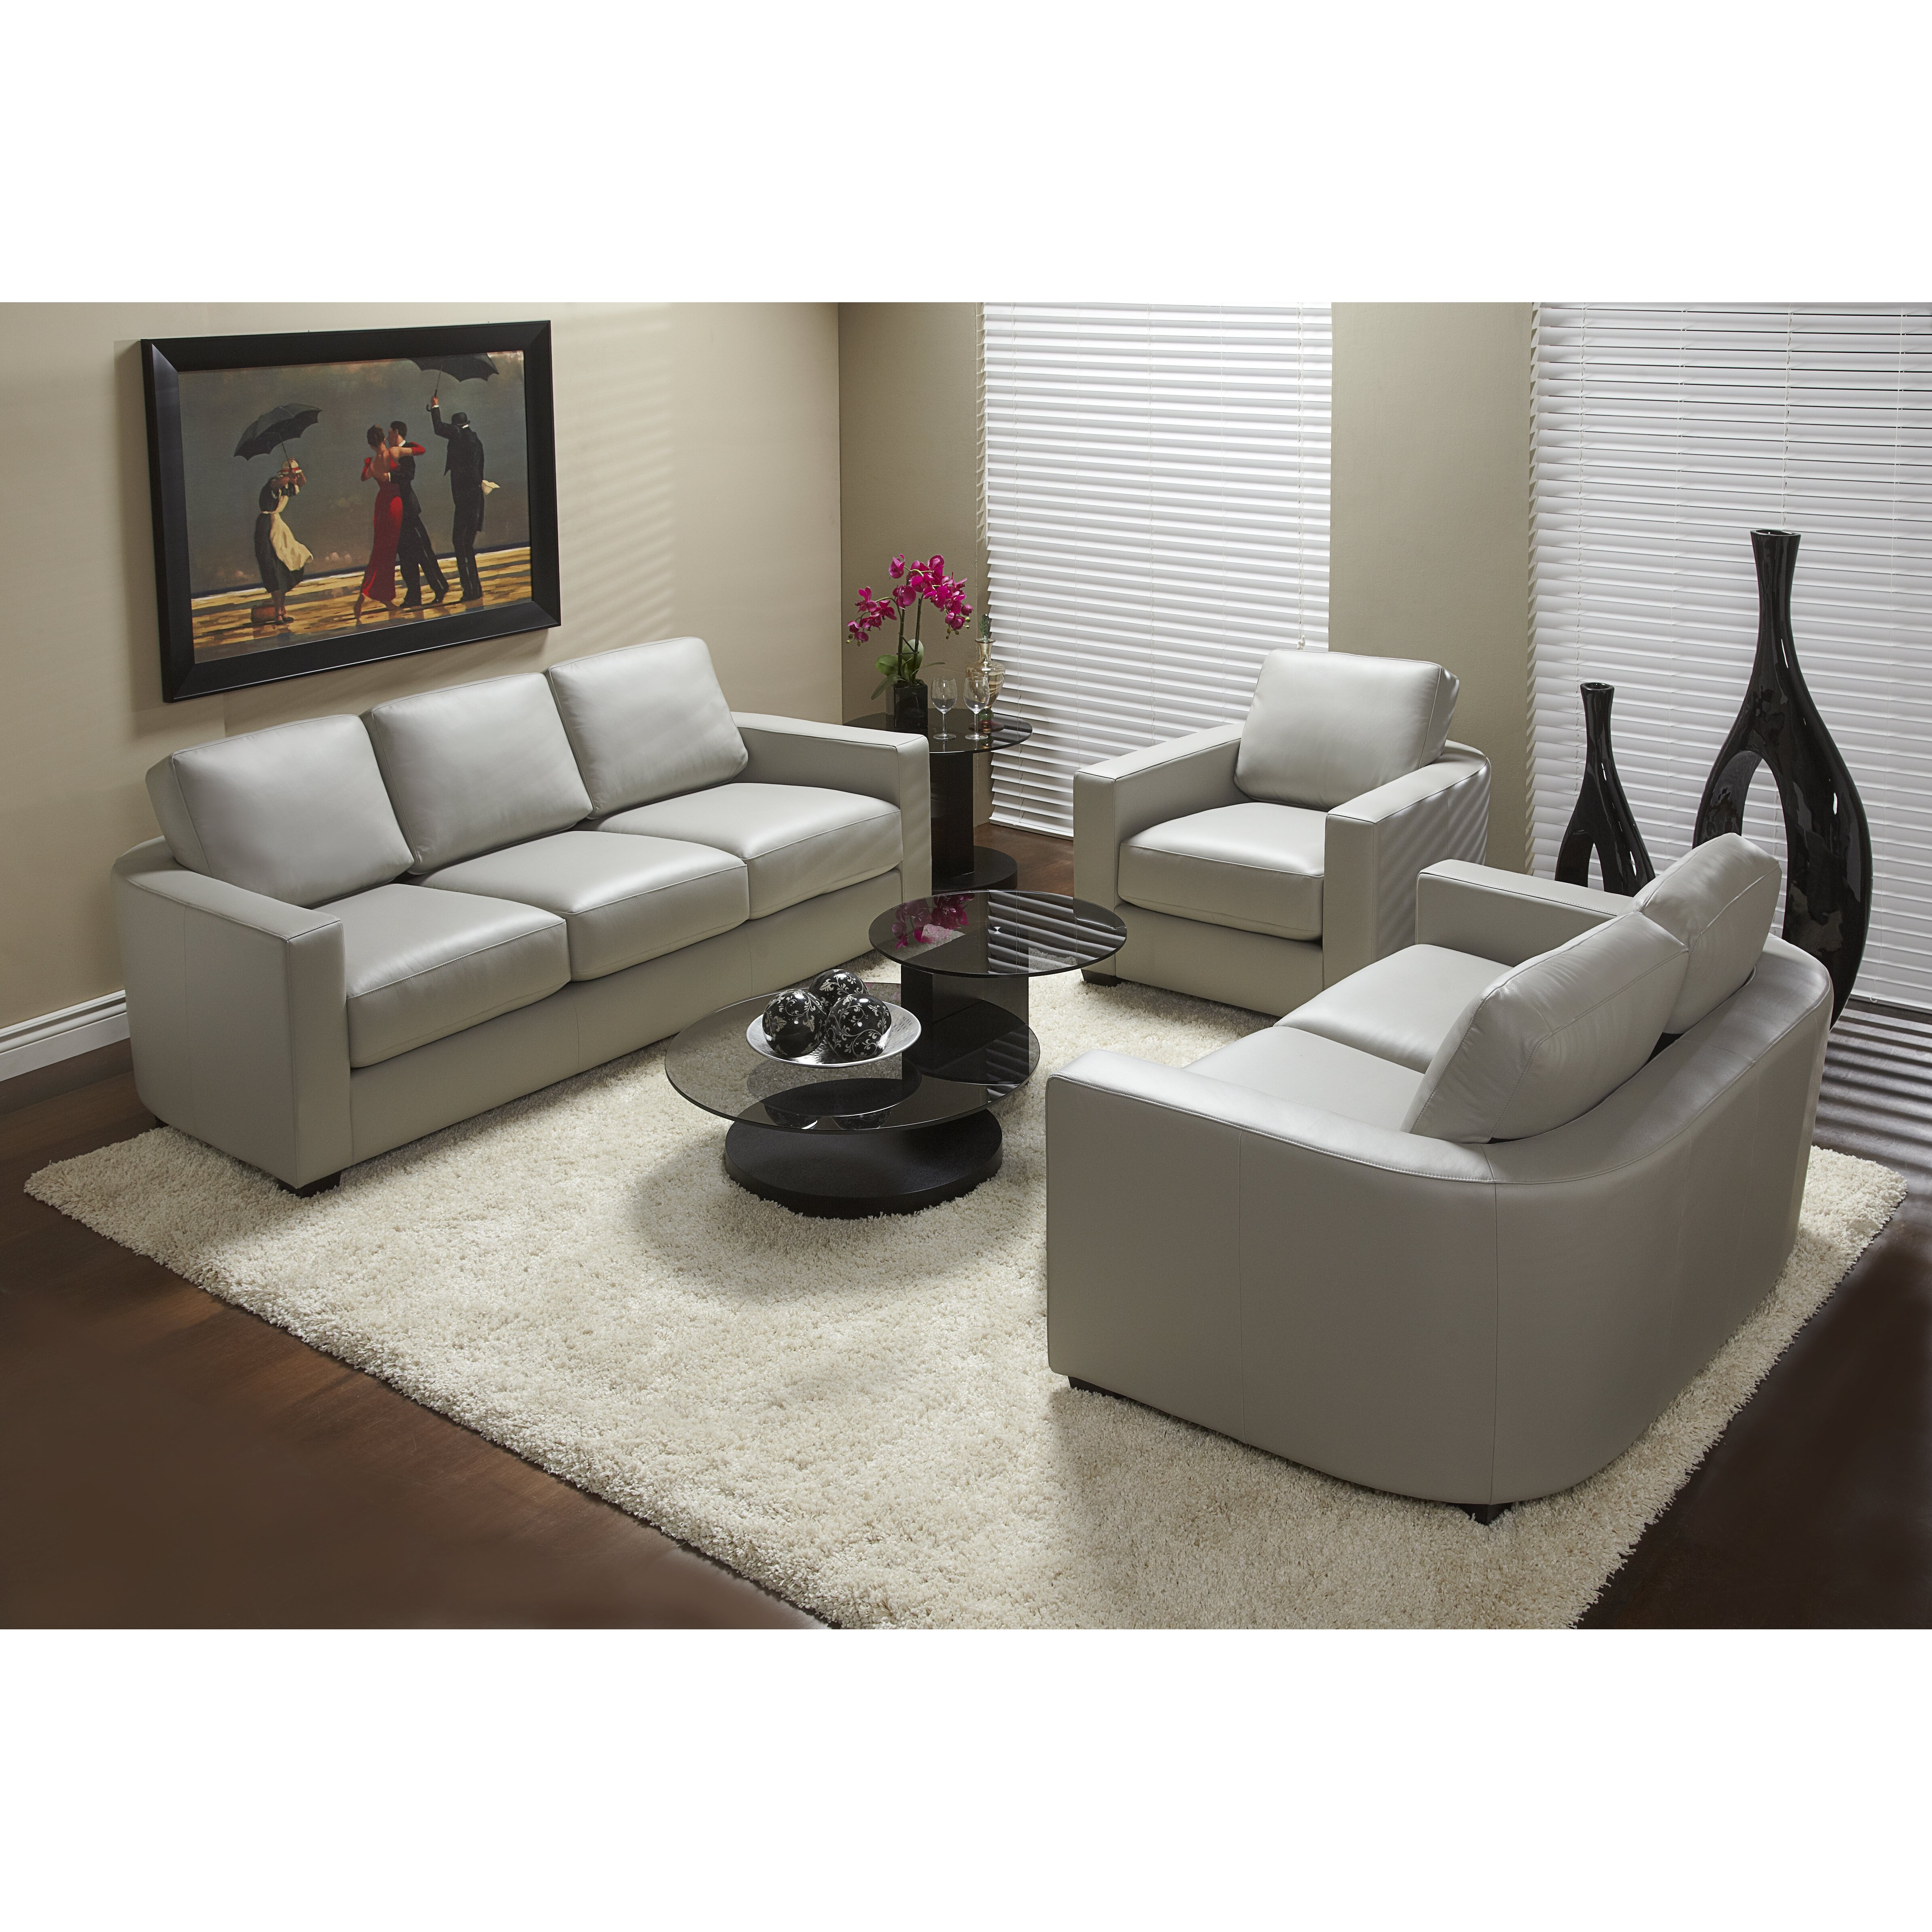 Lind Furniture 947 Series Top Grain Leather Living Room Collection Wayfair